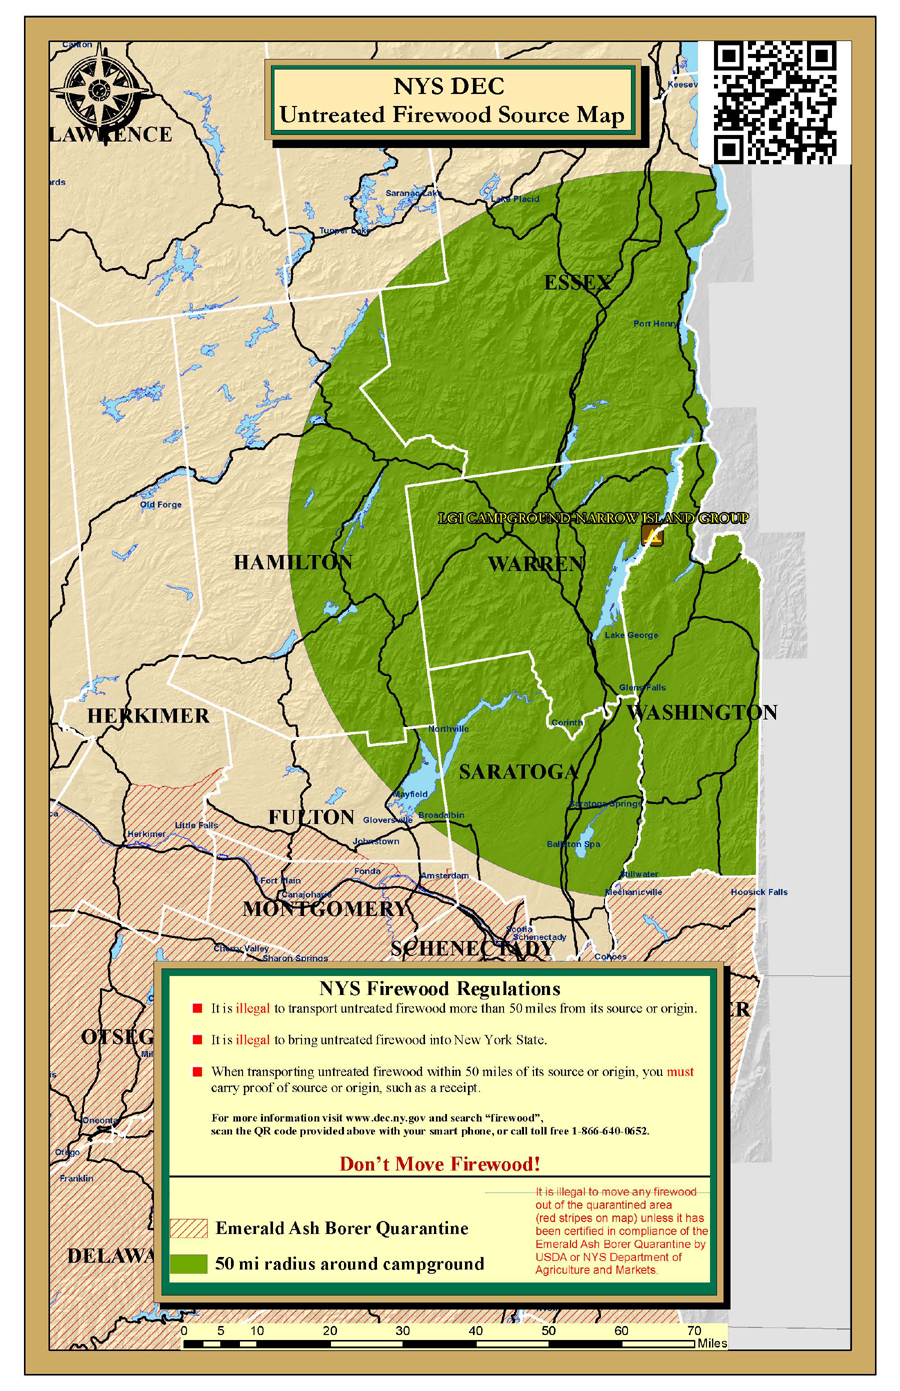 Lake George Islands Firewood Map - Narrow Island Group - NYS Dept ...